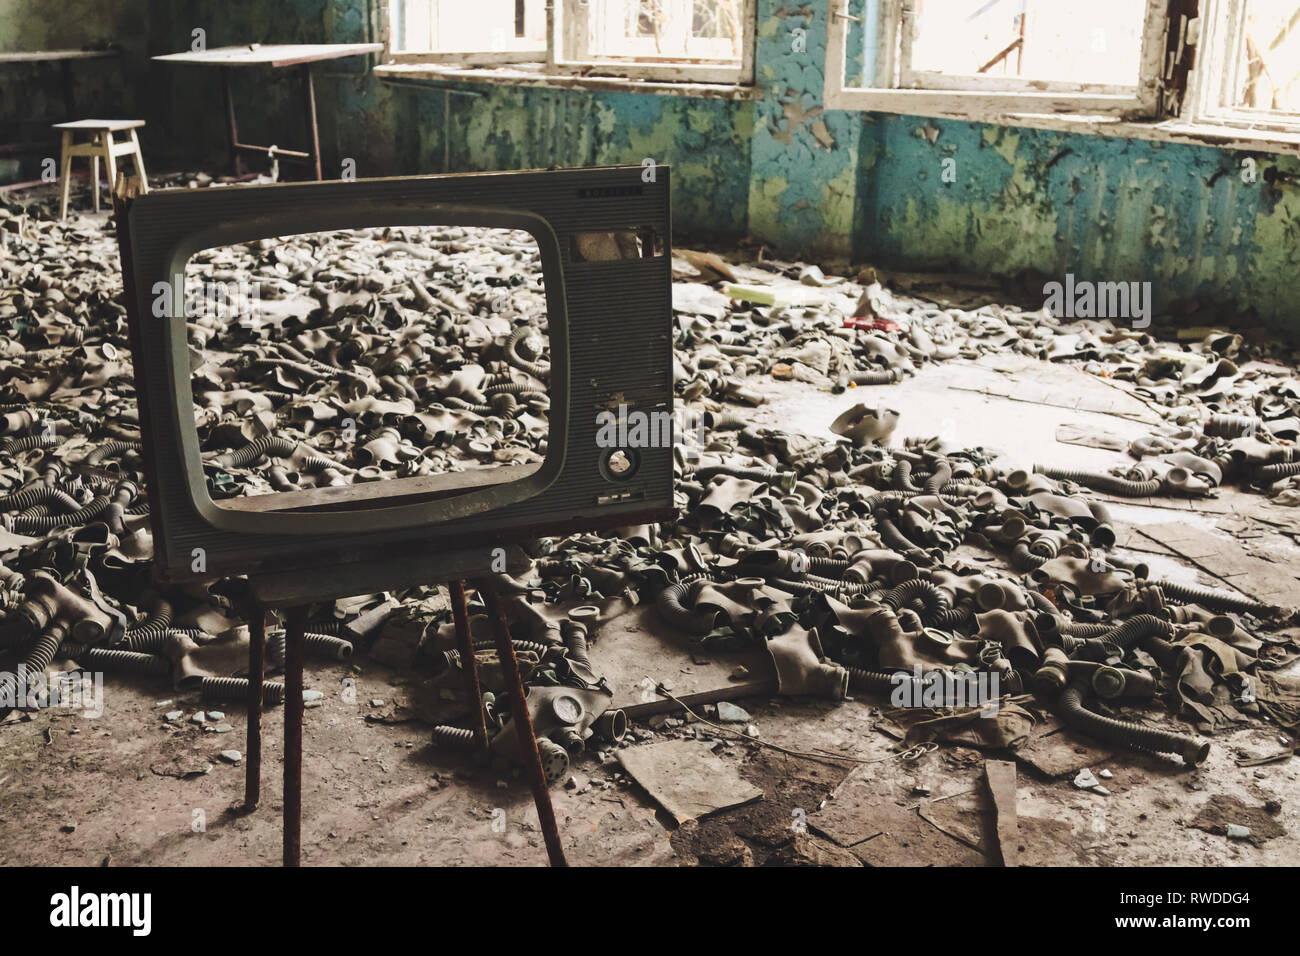 Gas masks that were aquired in case of chemical attack during the cold war now lay on the floor of a classroom inside the Chernobyl exclusion zone. - Stock Image